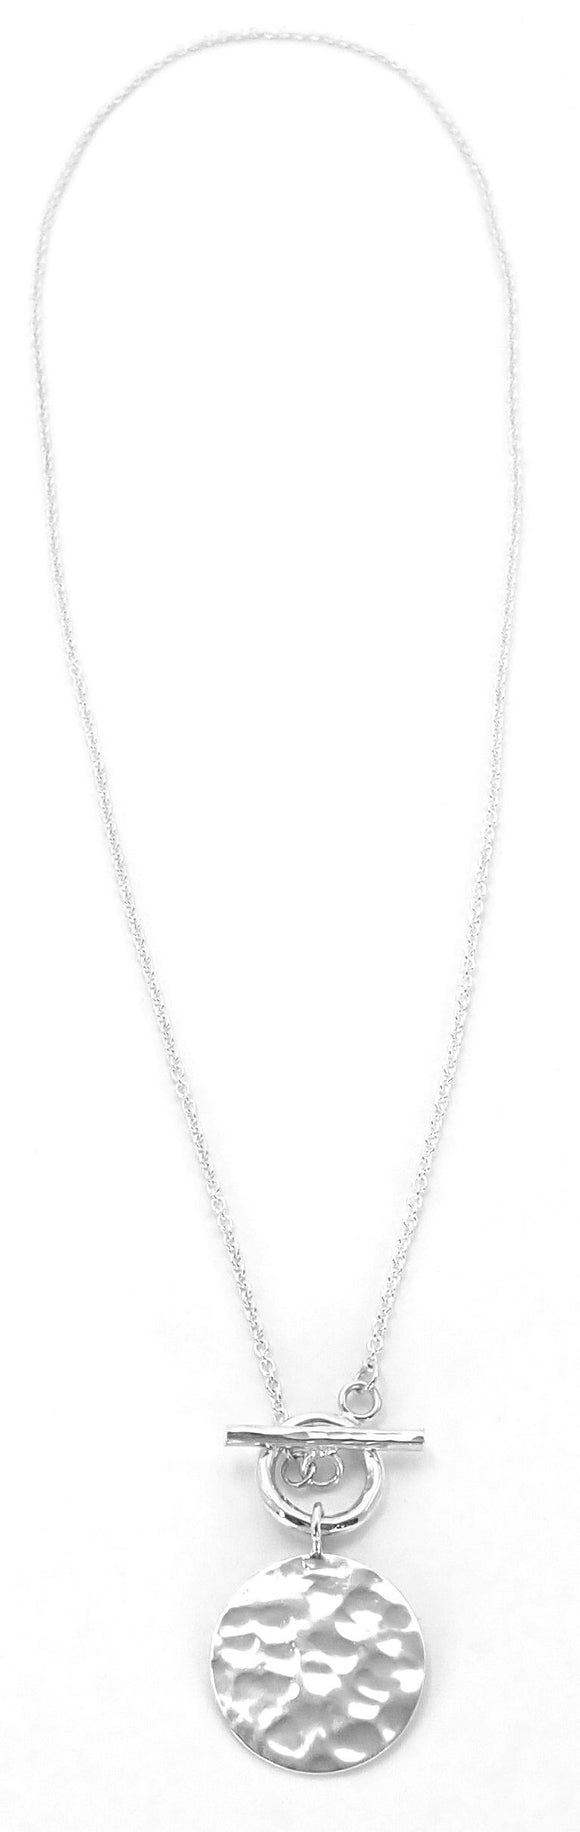 N720 KASI Hammered Sterling Silver Disc Toggle Necklace